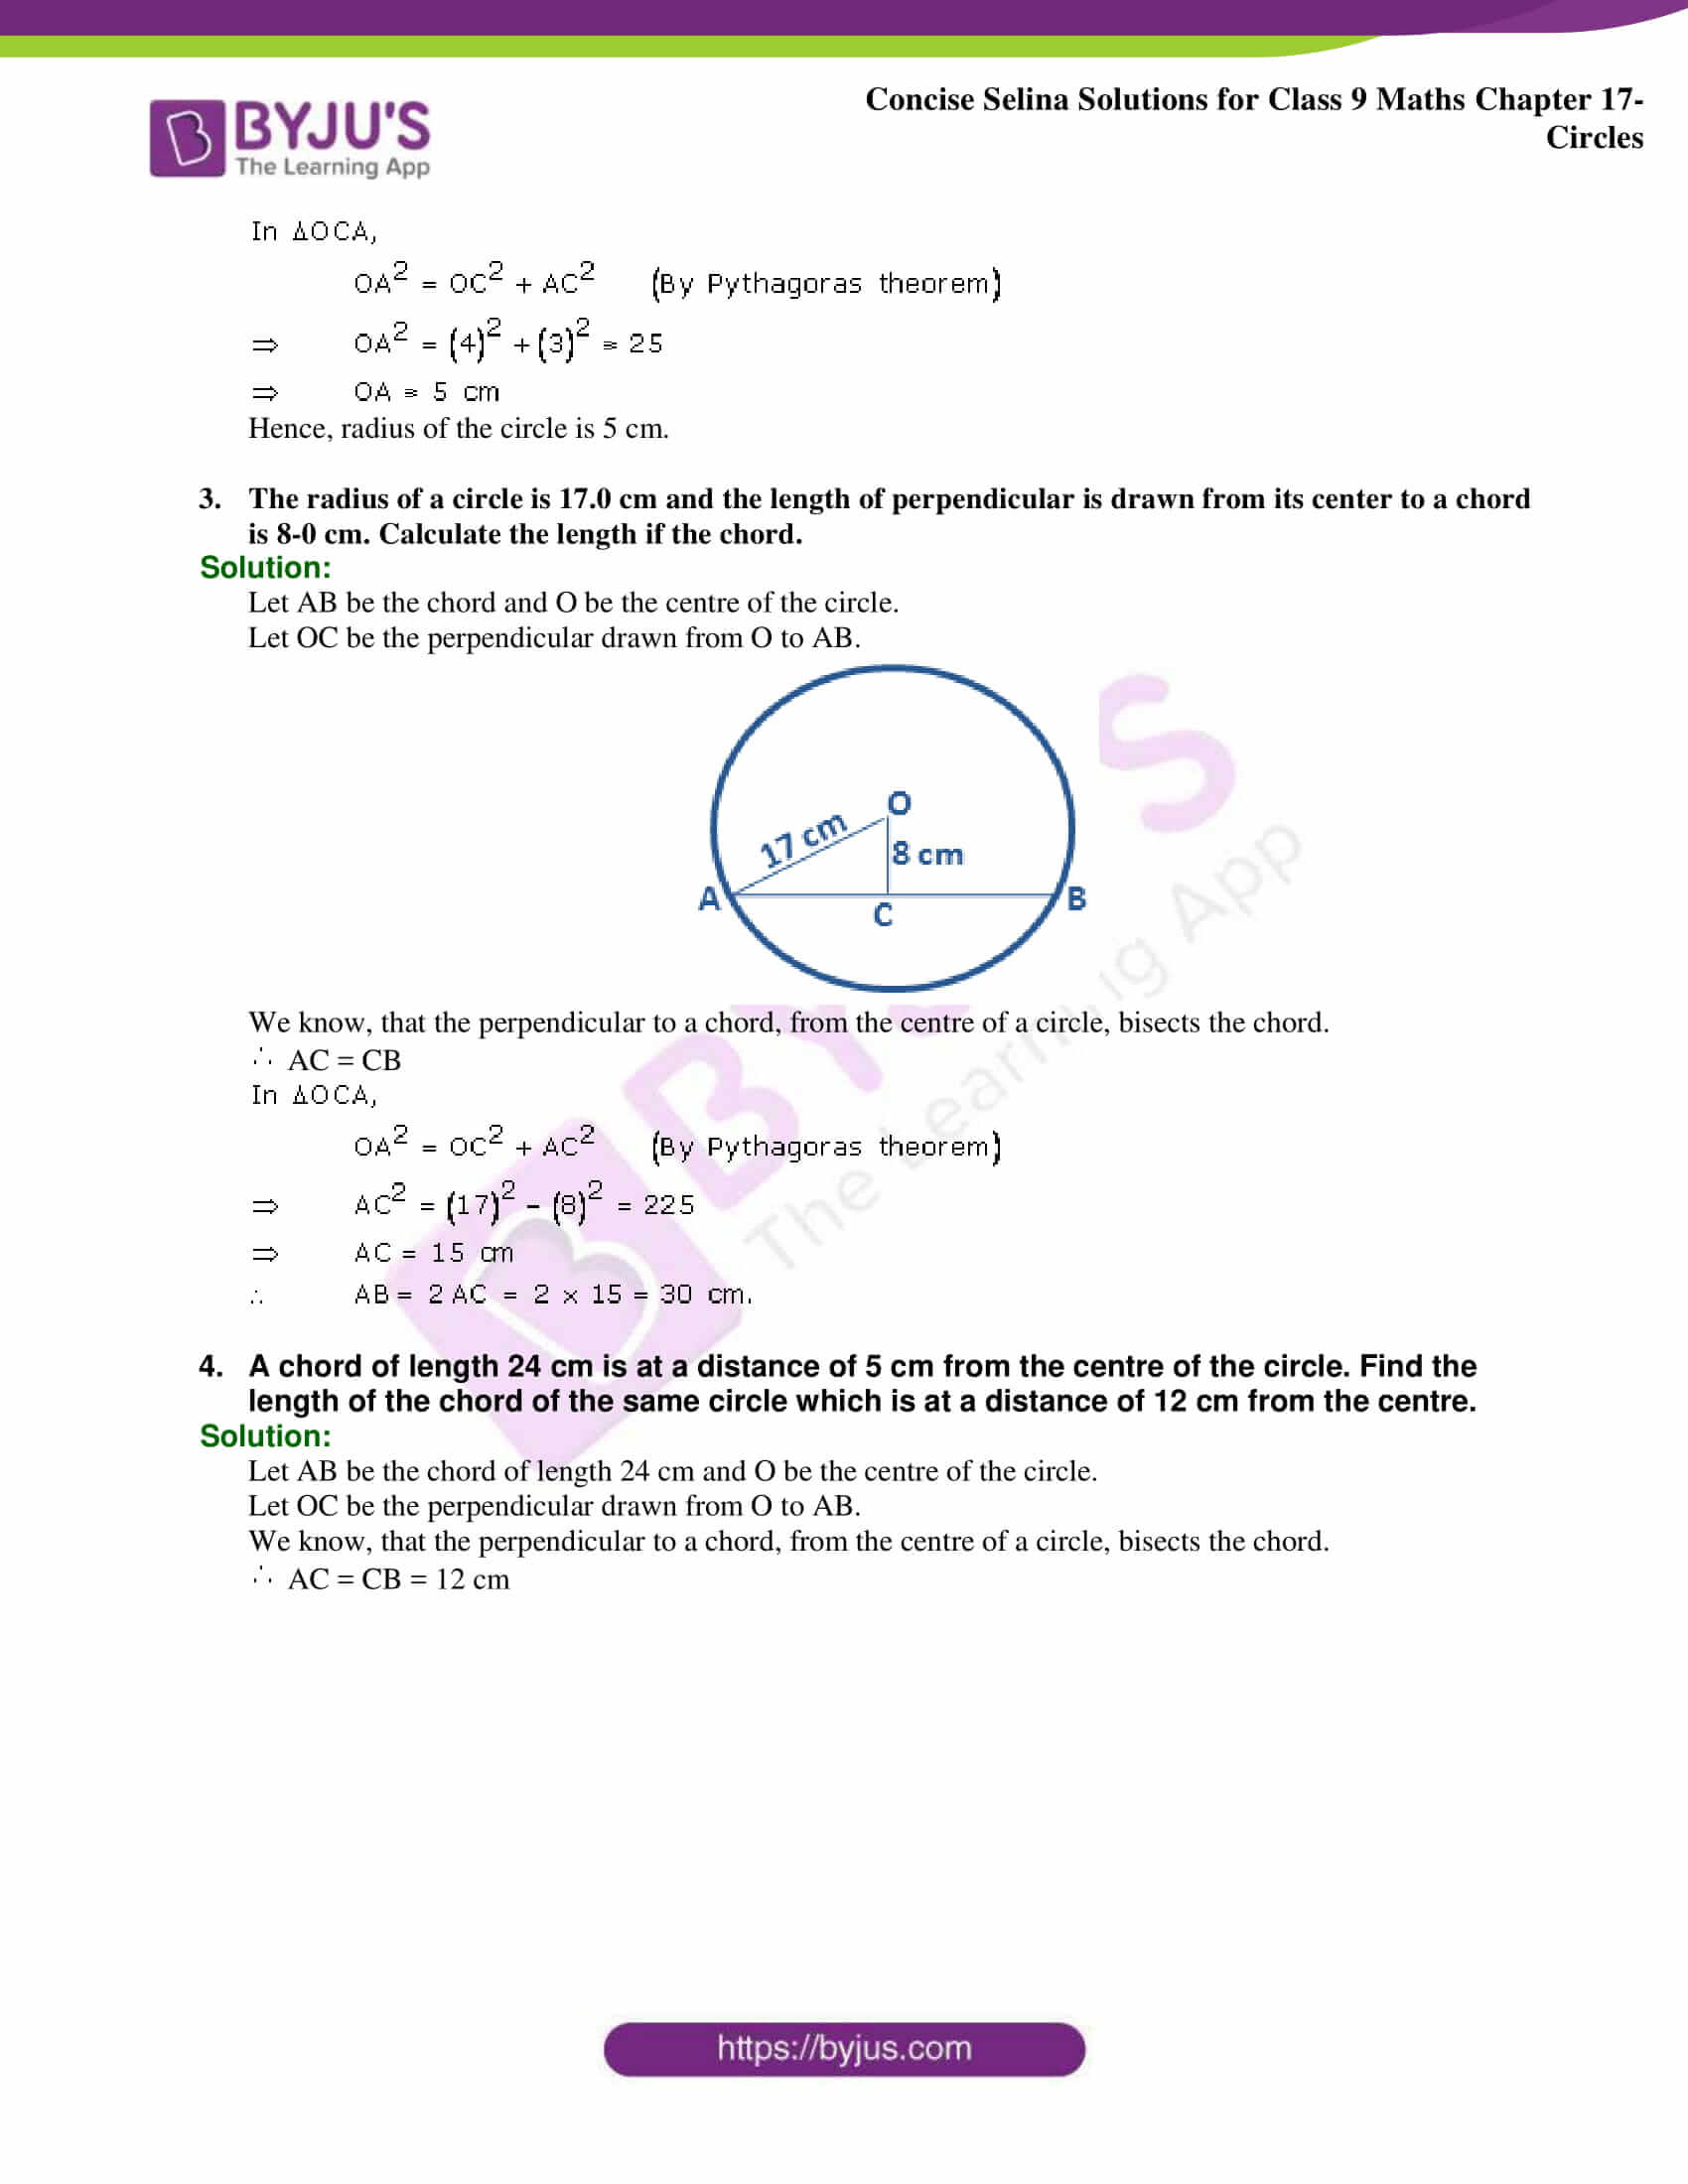 Concise Selina Solutions Class 9 Maths Chapter 17 Circles part 02